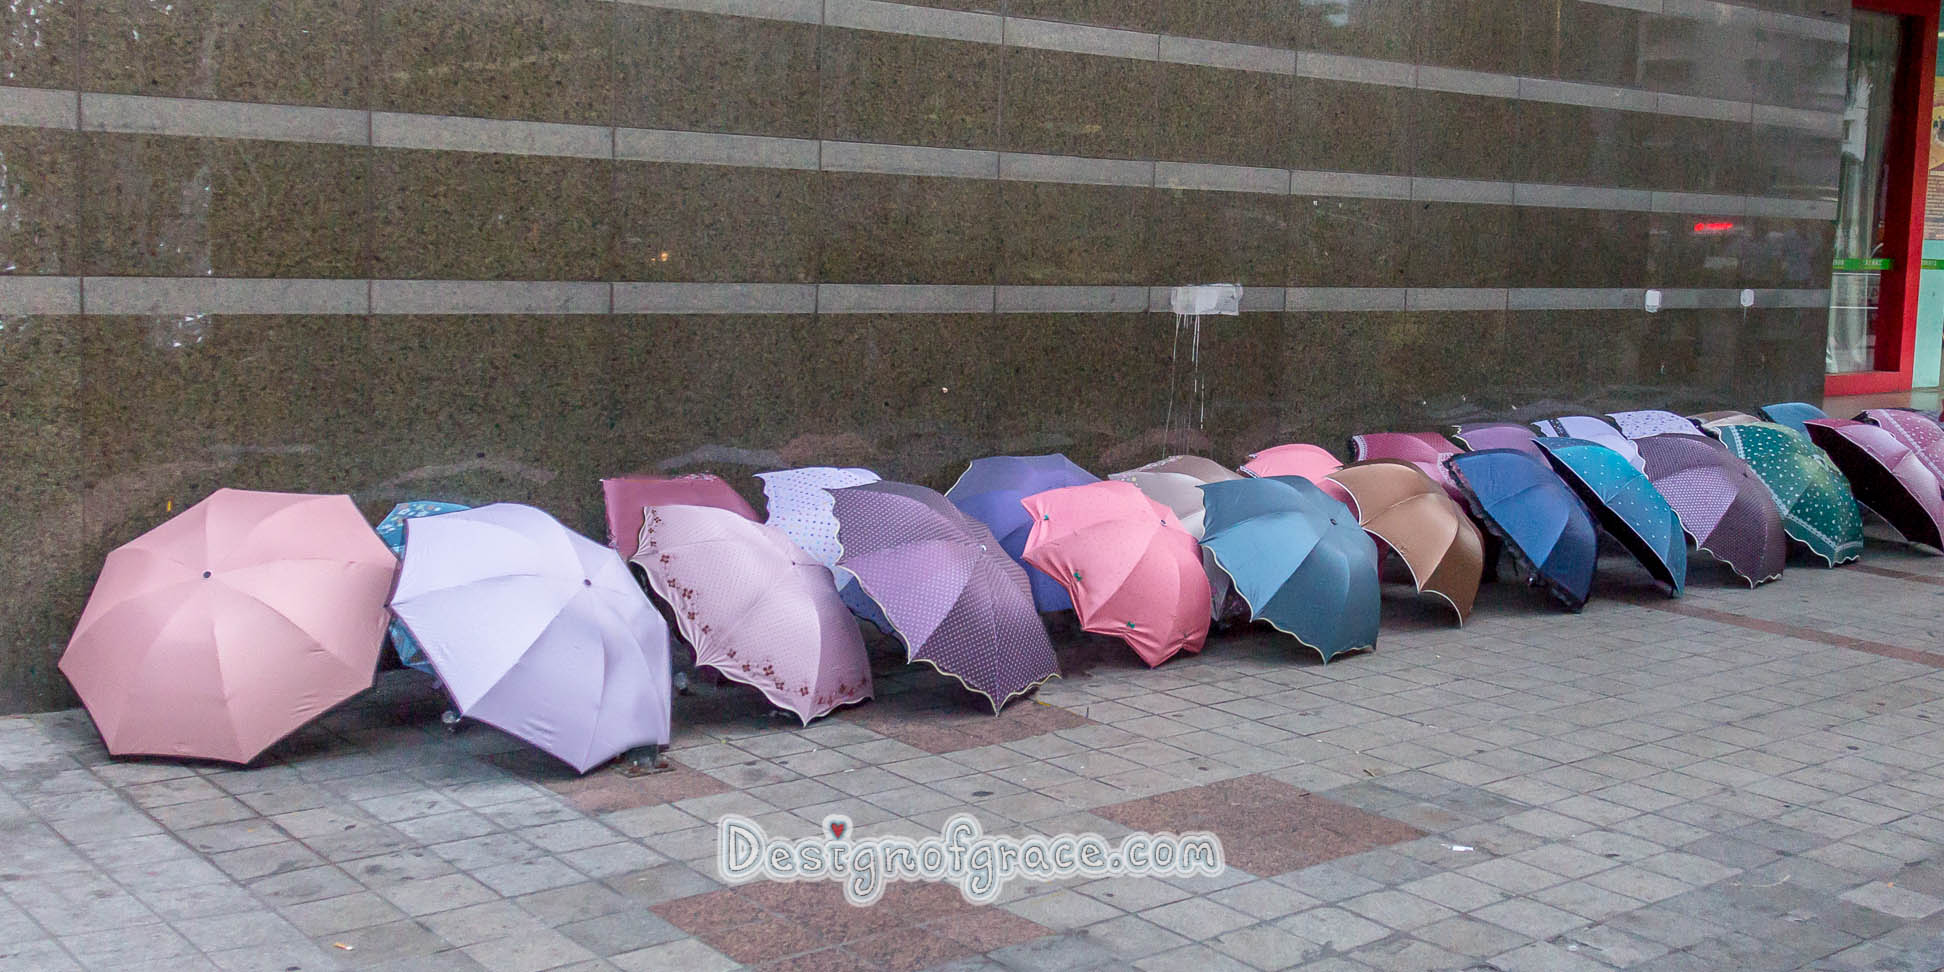 Row of umbrellas After